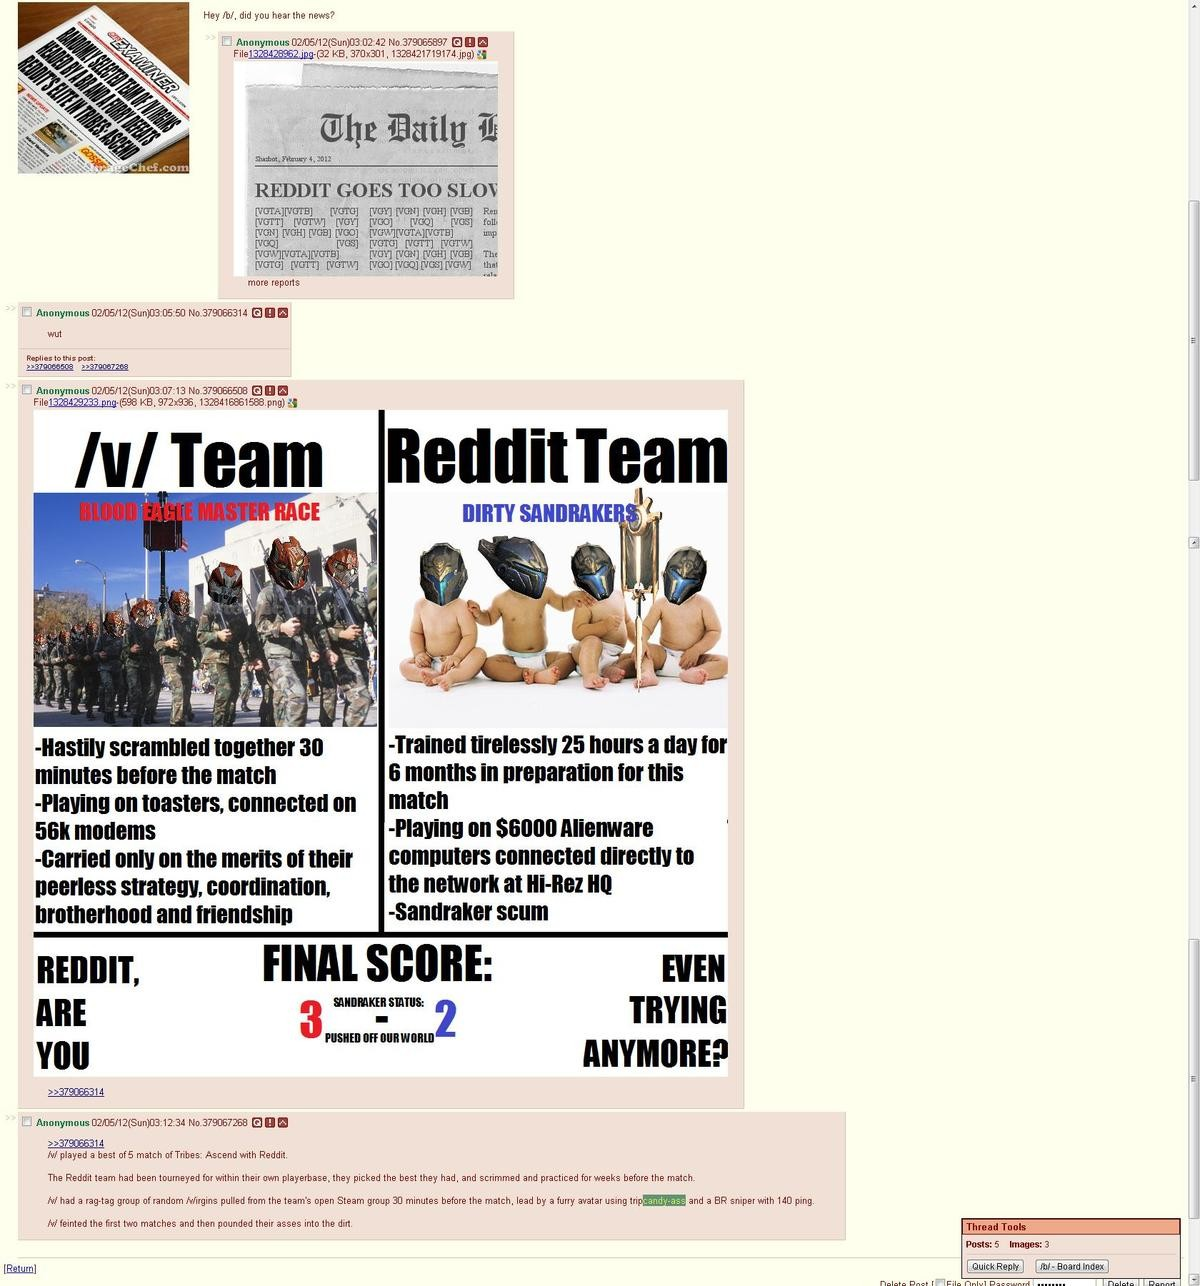 never 4get. give me thumbs because i'm drunk, if you don't you will get your ass kicked by a bunch of /v/irgins. Hey N we you hearths news? D Anonymous / 12( Su